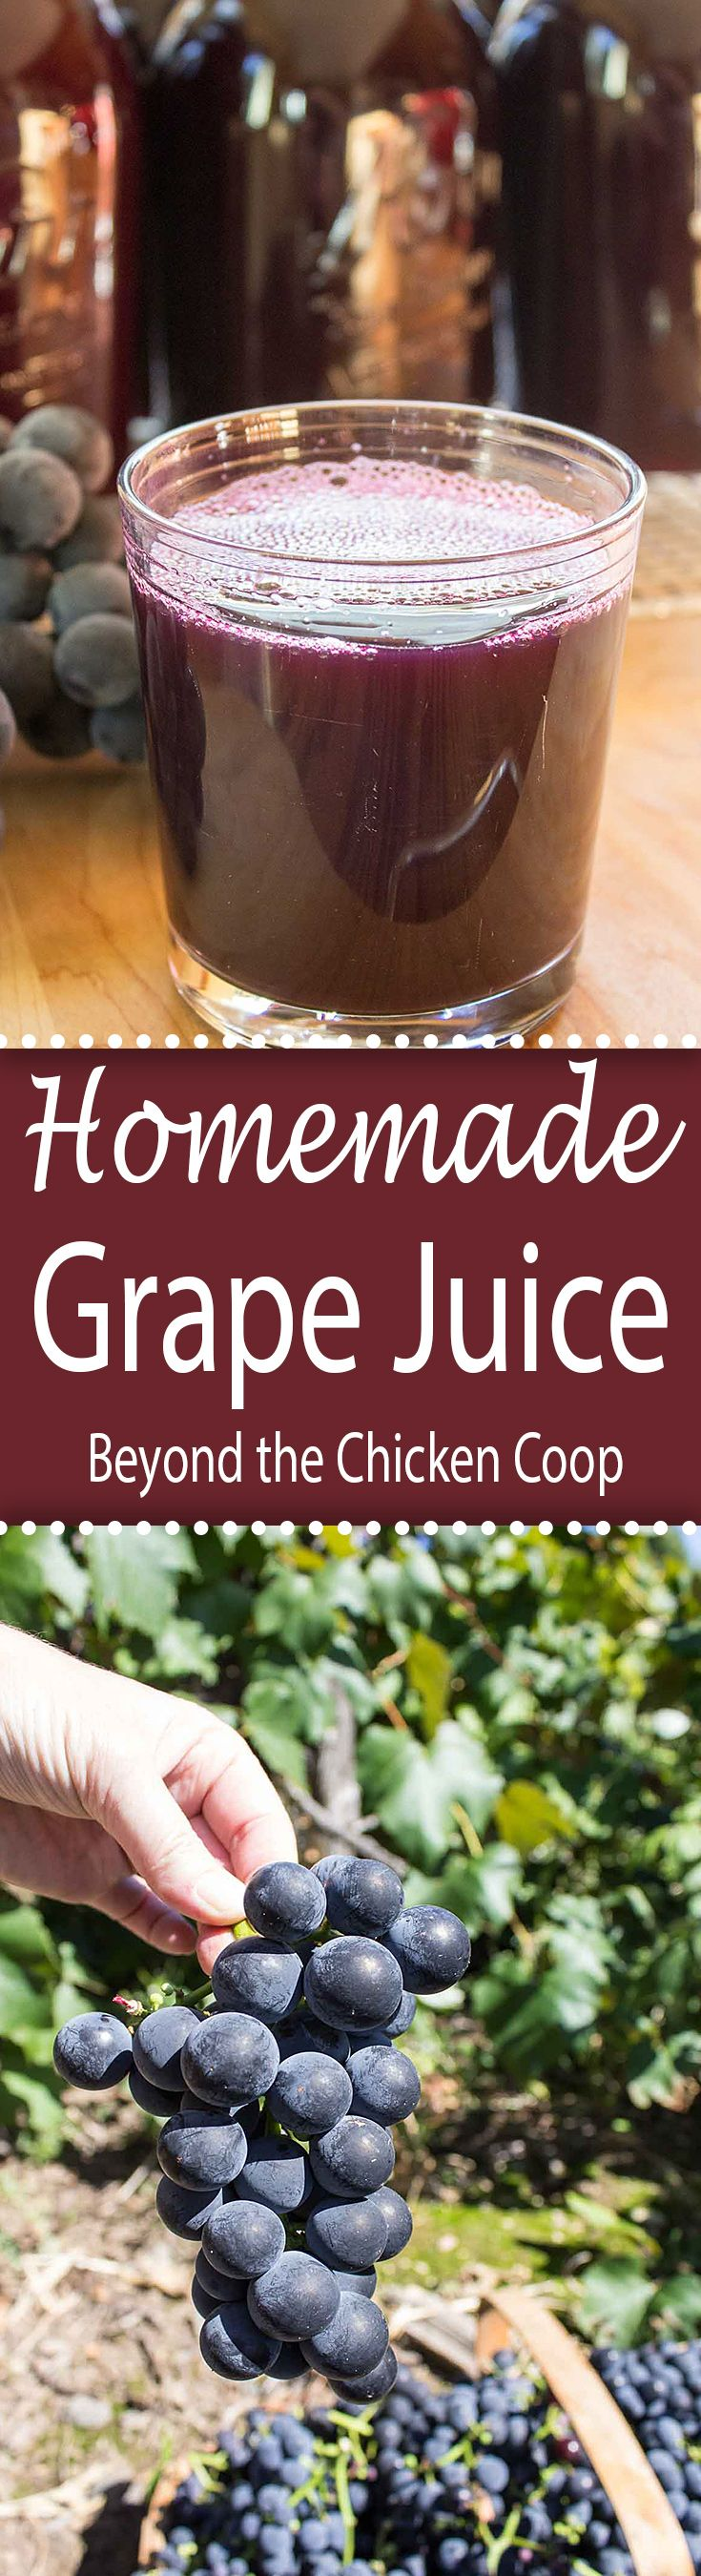 Fresh picked Concord grapes made into homemade grape juice using a steam juicer.